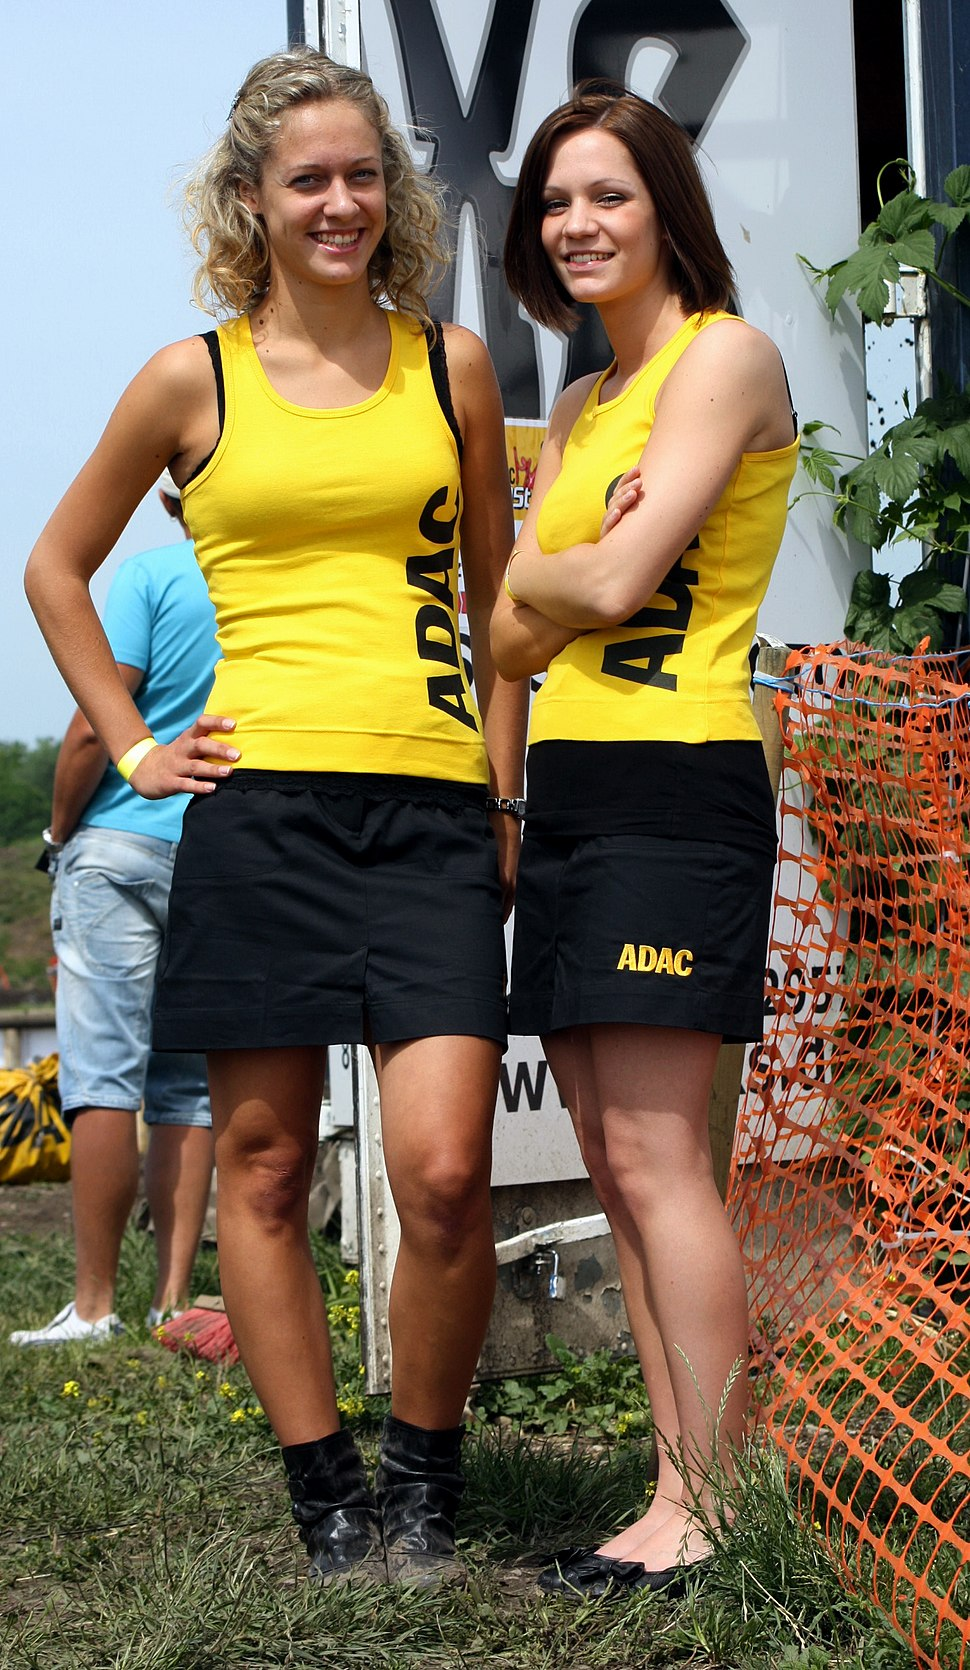 ADAC MX Masters ADAC Promotiongirls